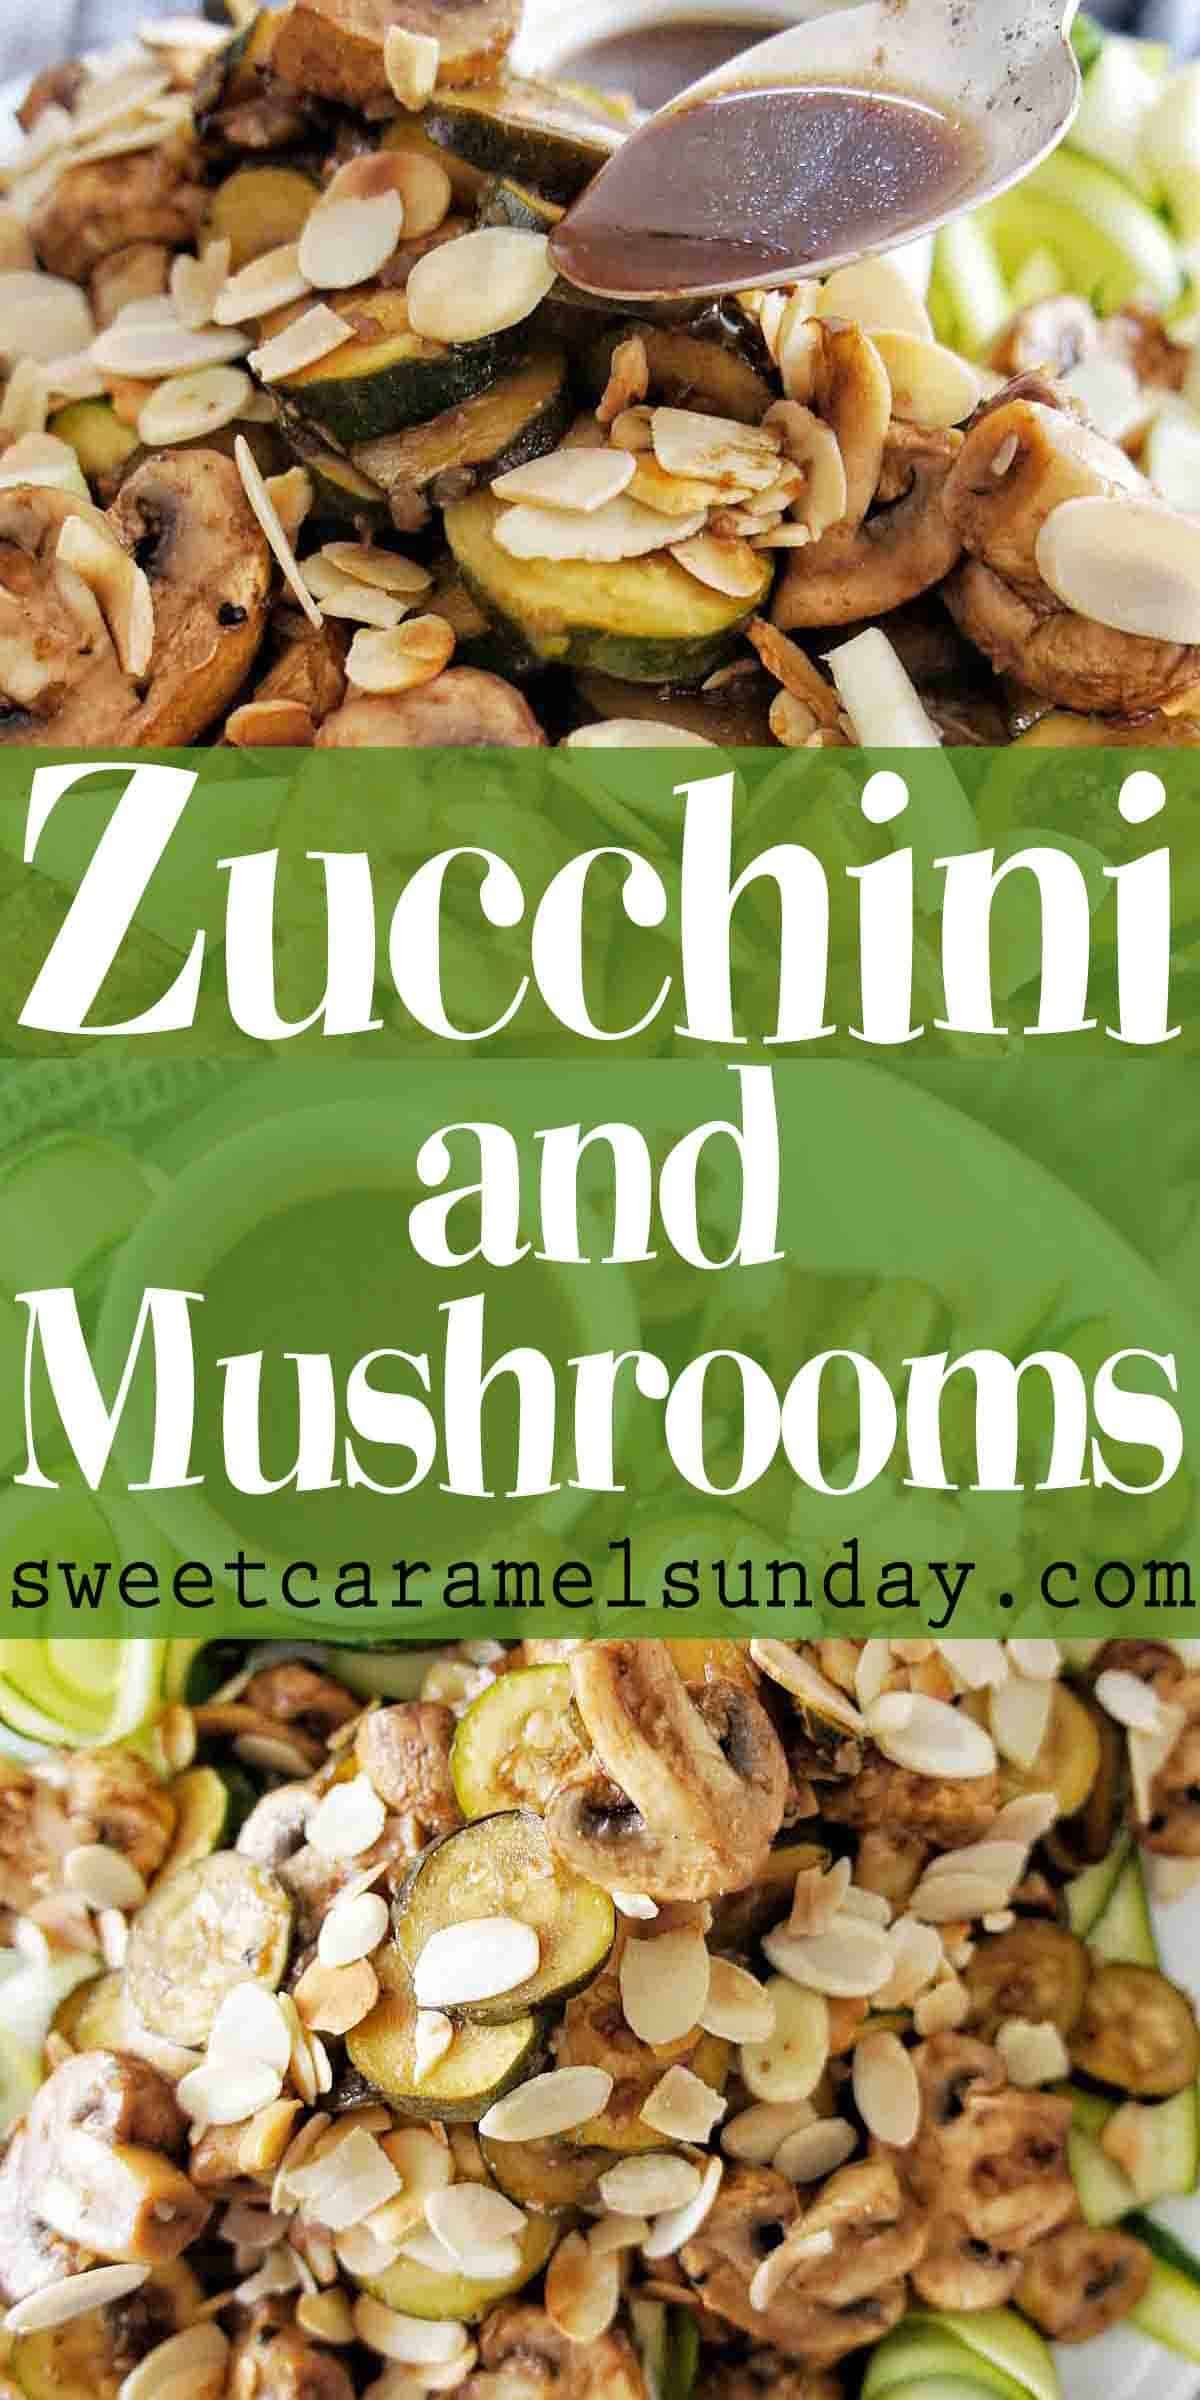 Zucchini and mushrooms with text overlay